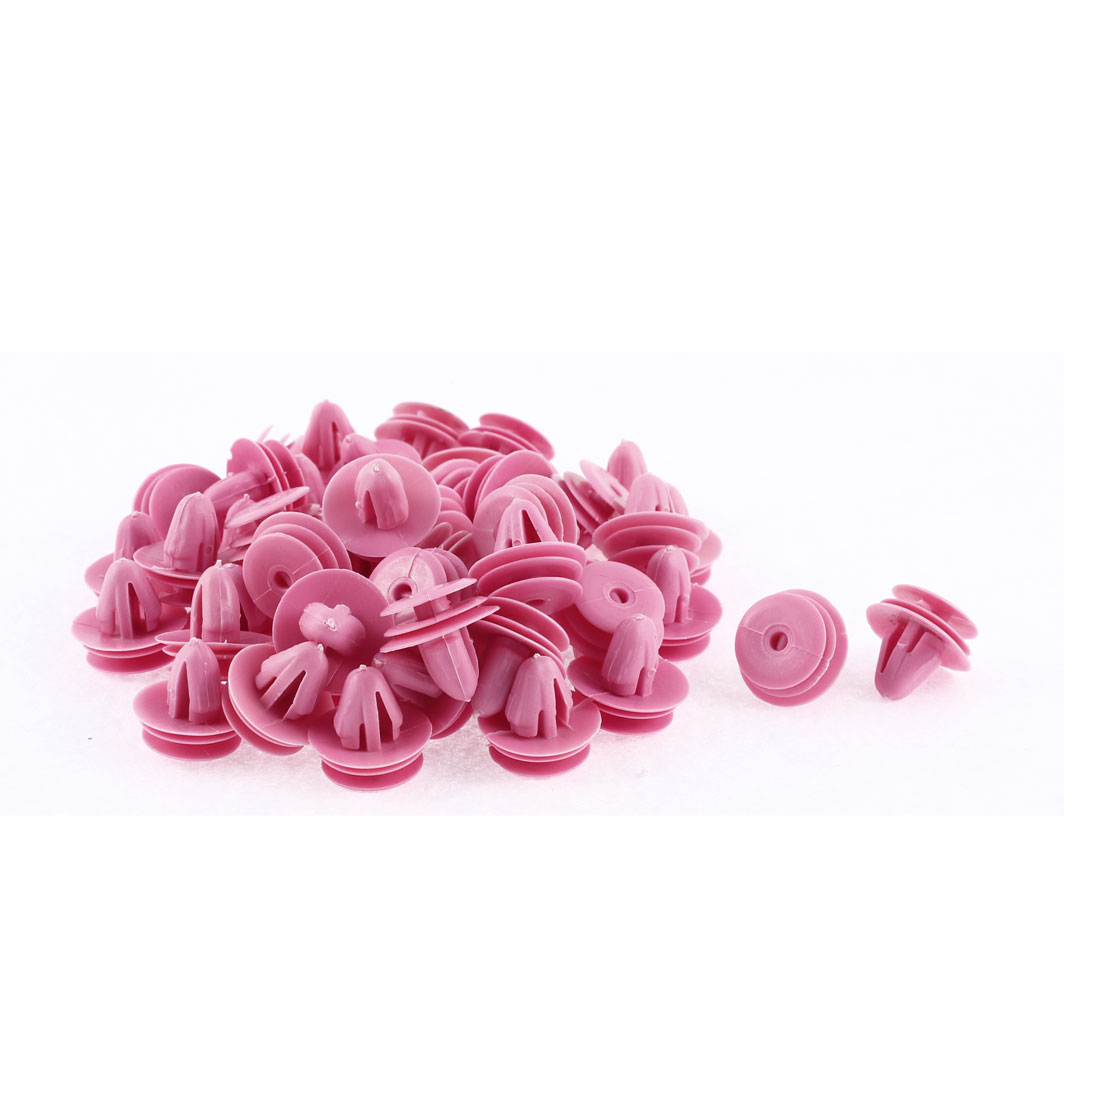 Unique Bargains 50 Pcs 10mm x 7.5mm Hole Fuchsia Plastic Rivets Fastener for Hyundai Elantra